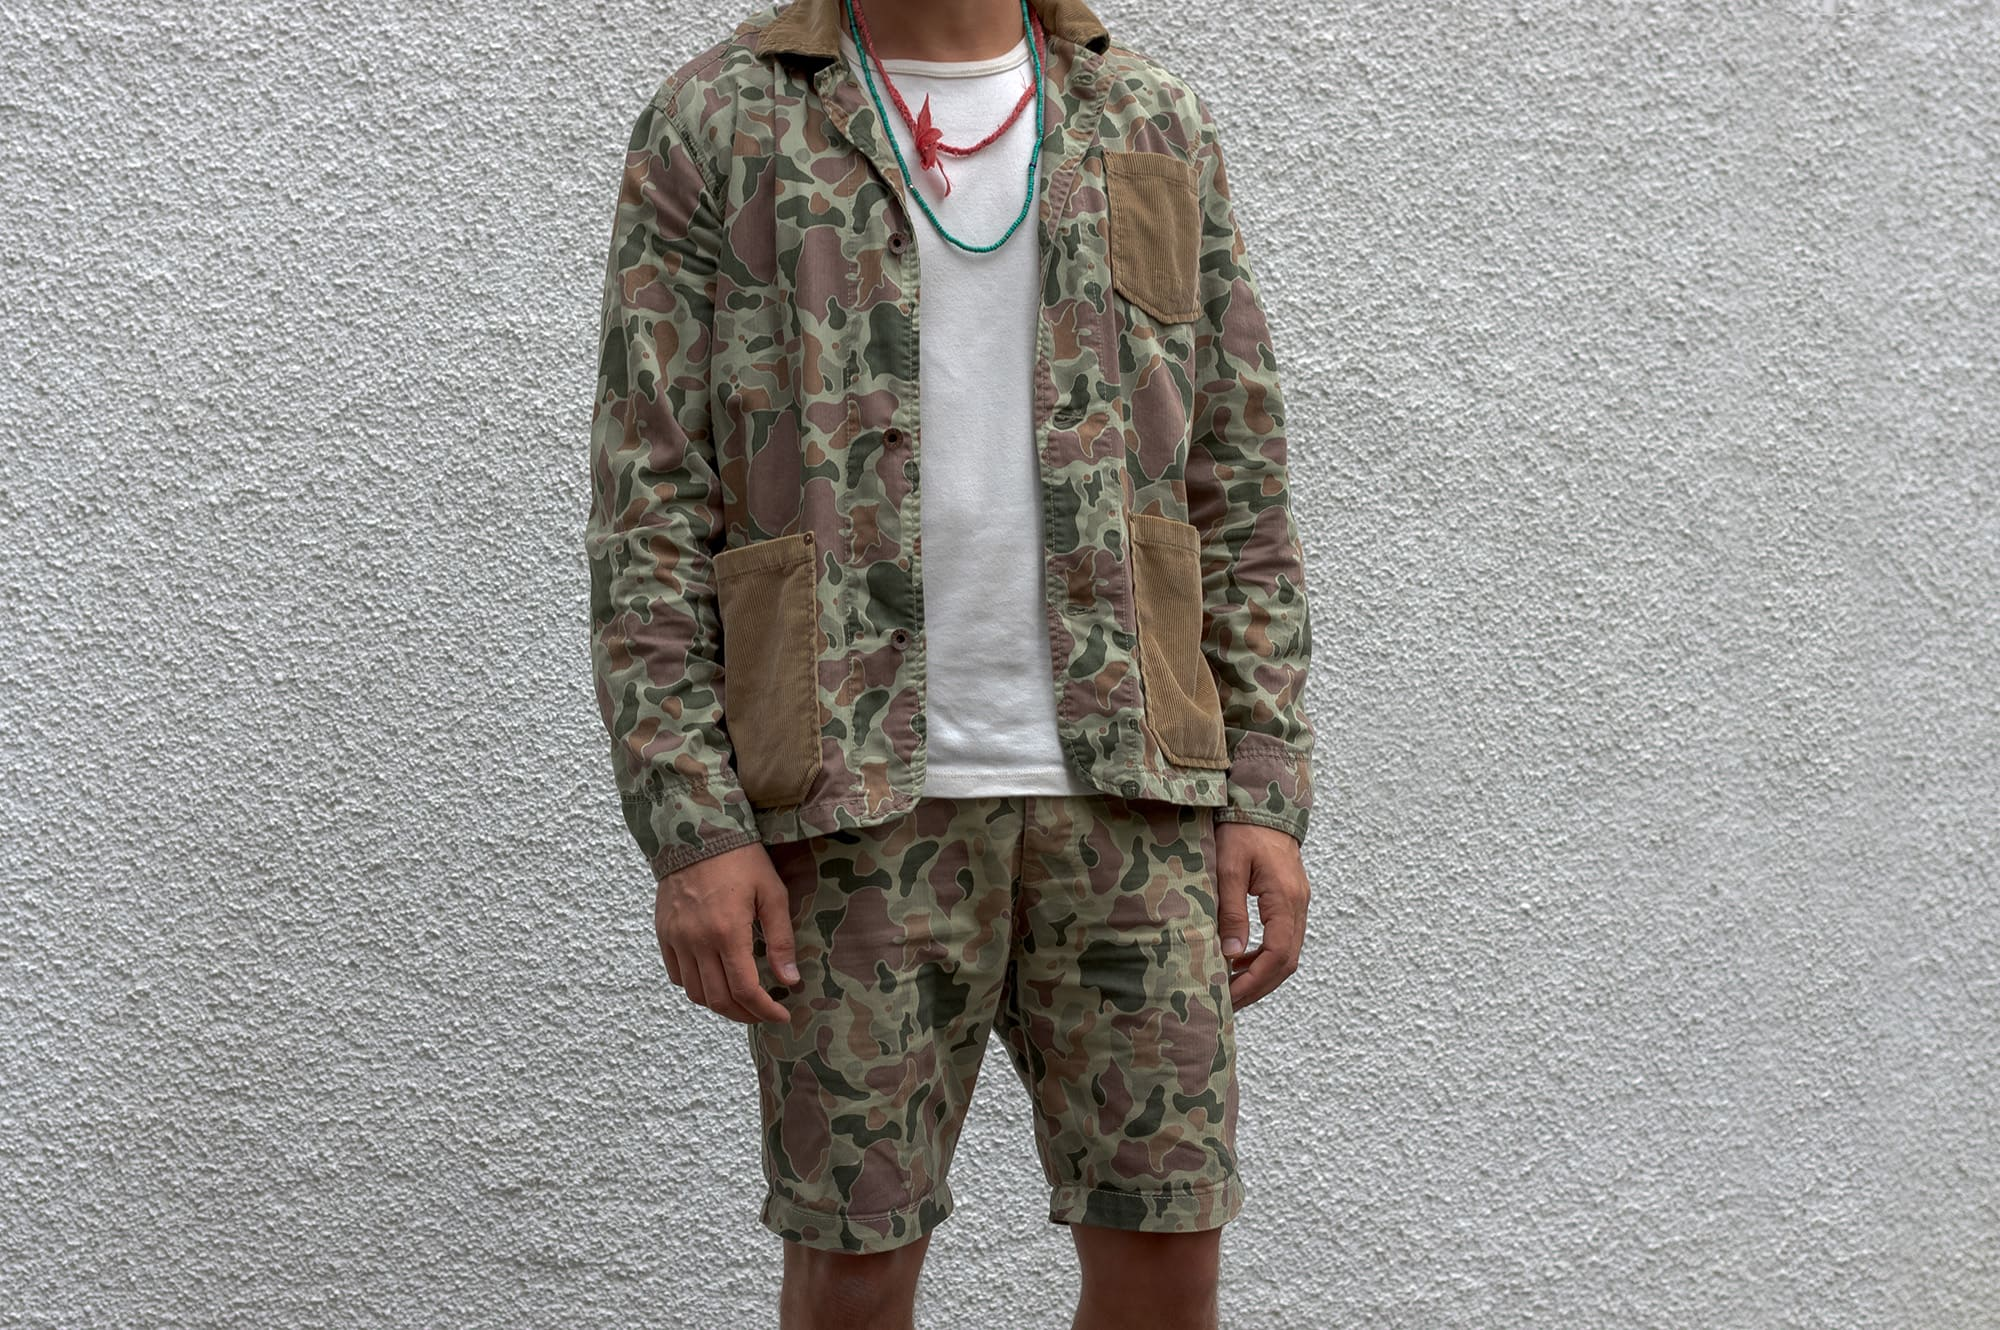 workwear oufit from edwin denim brand with a camo pattern and visvim virgil boots